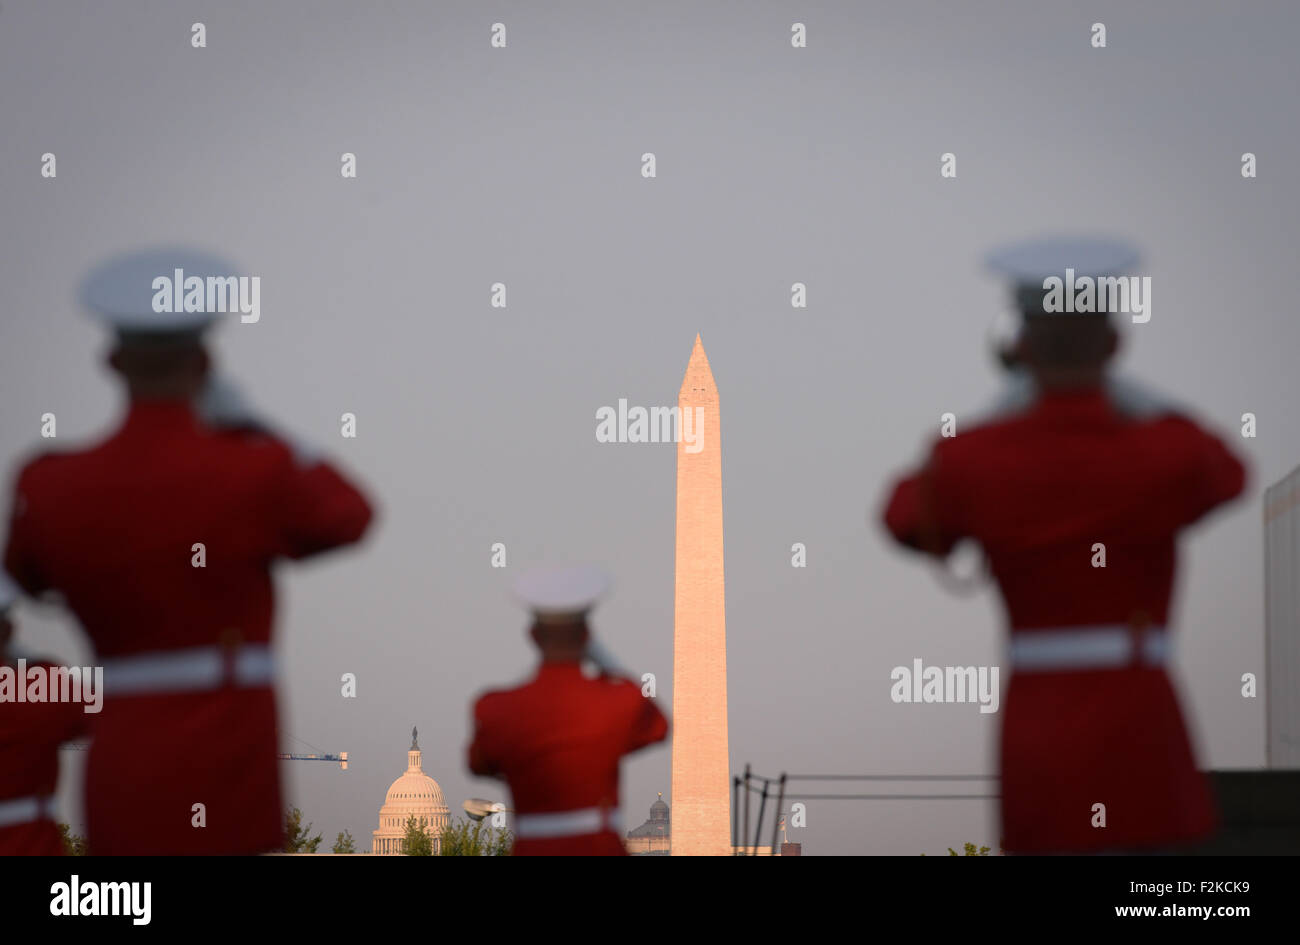 (150921) -- WASHINGTON D.C., Sept. 21, 2015 (Xinhua) -- File photo taken on July 22, 2014 shows the military band - Stock Image